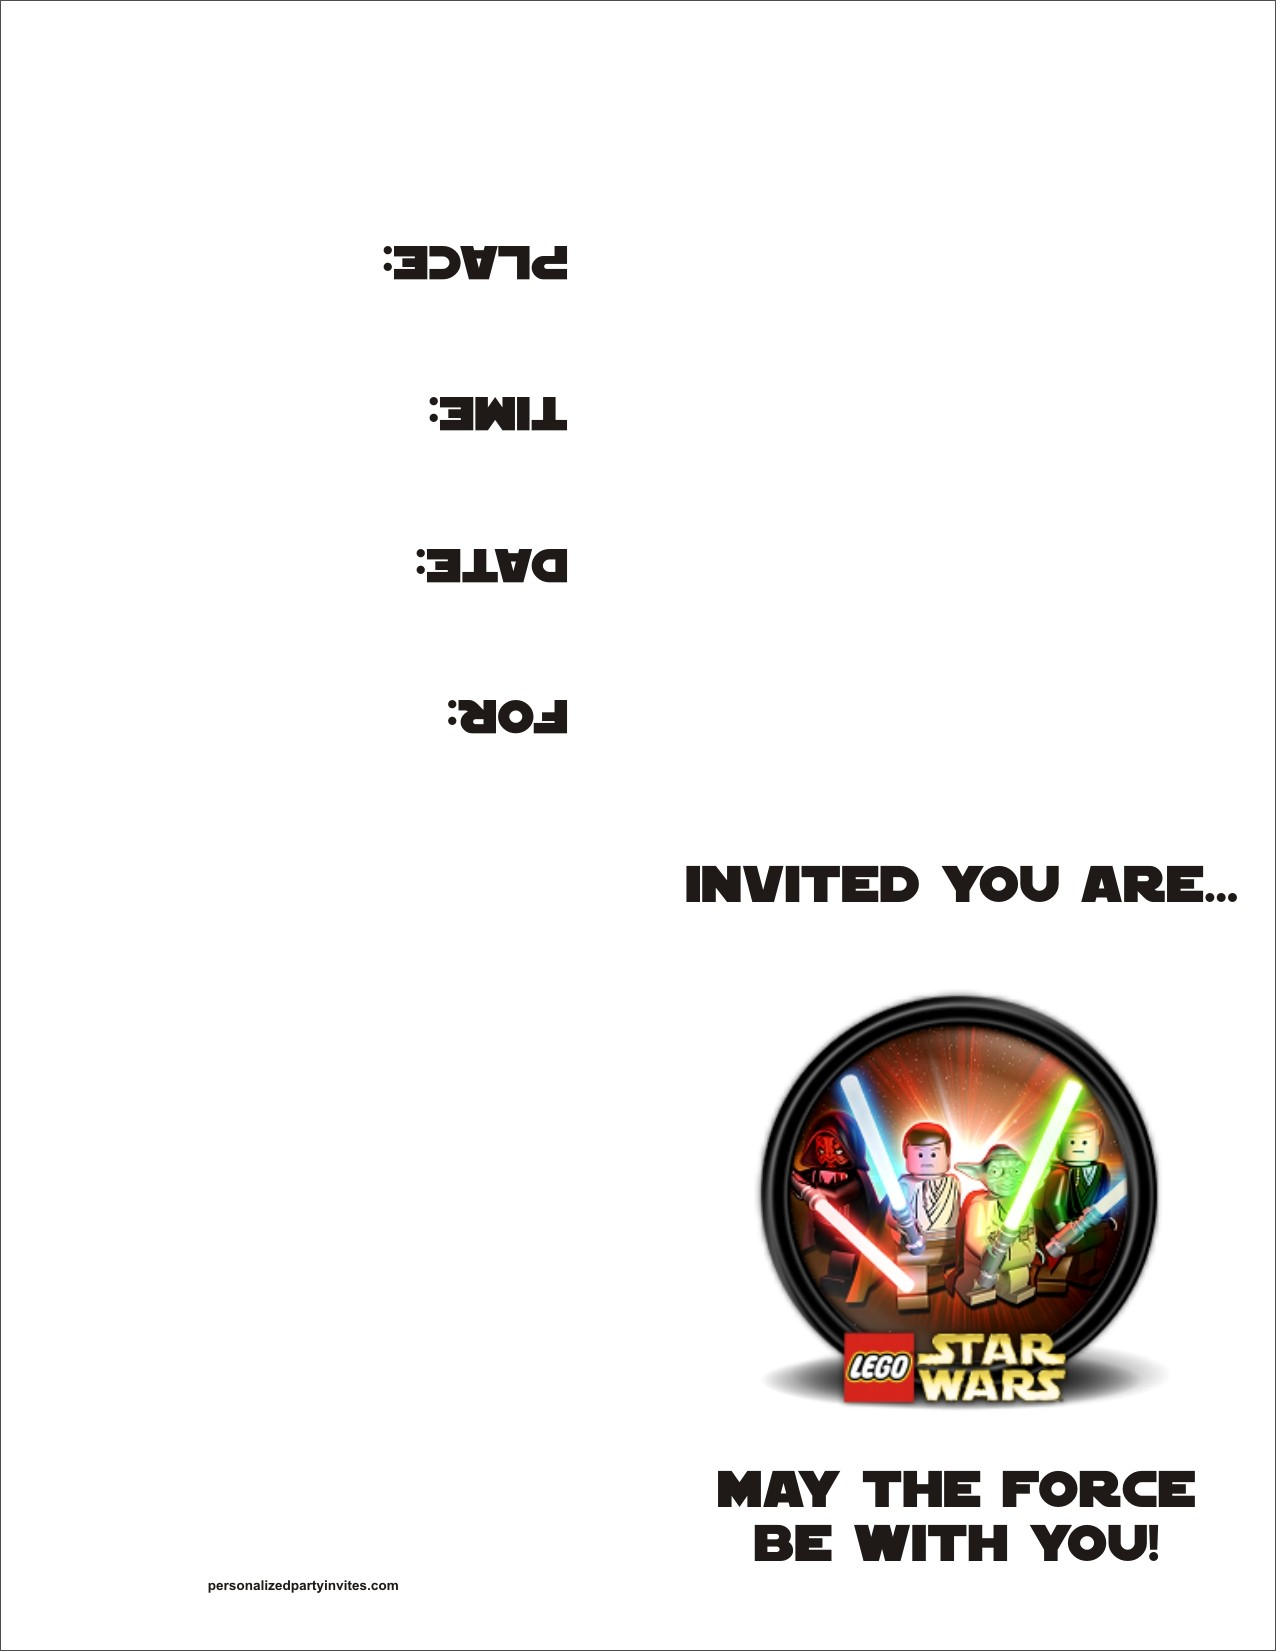 Lego star wars free printable birthday party invitation lego star wars free printable birthday party invitation personalized party invites stopboris Images